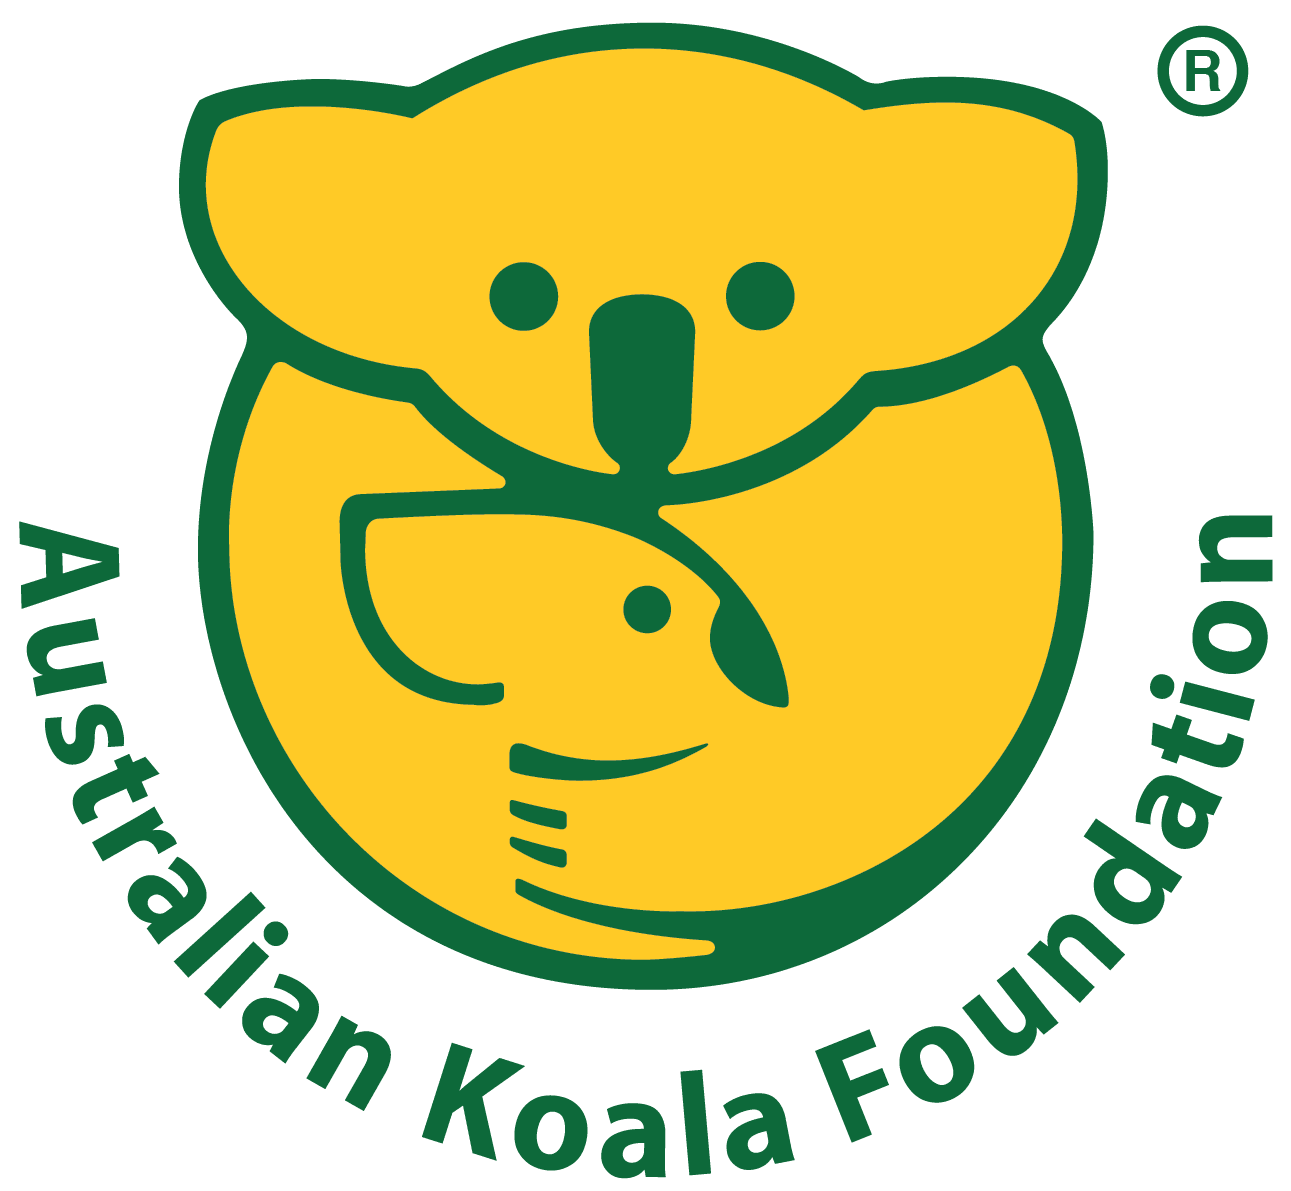 Yellow and green image of koala and young koala, green text Austrailian Koala Foundation